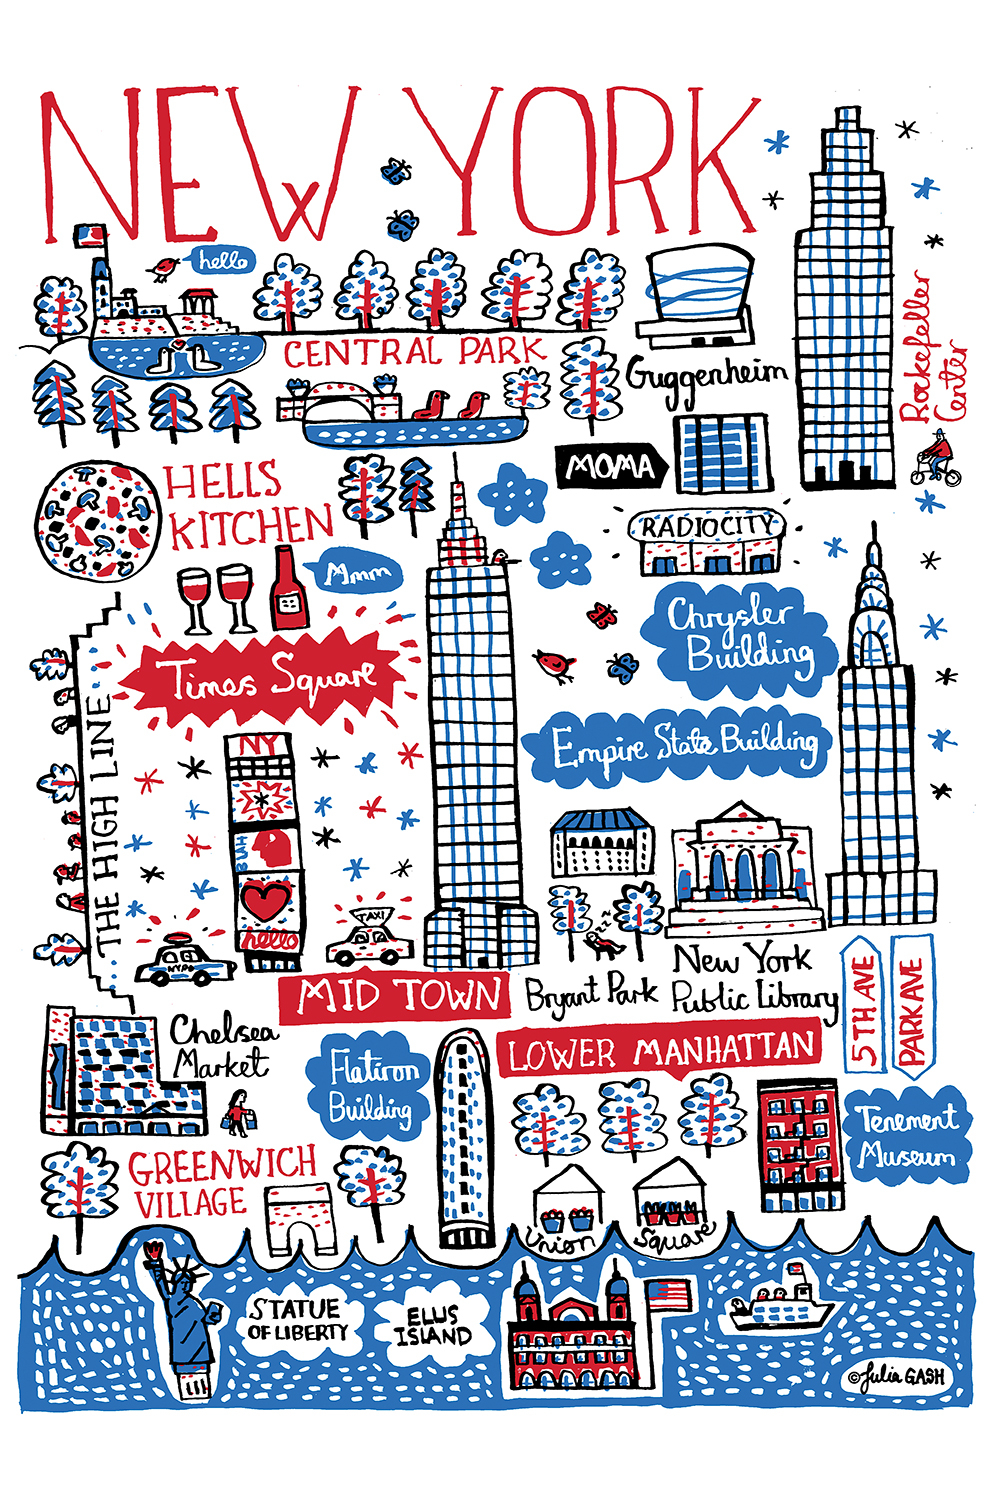 a print in red, blue, and white that shows various new york locations including the guggenheim, greenwich village, hells kitchen, ellis island, and times square